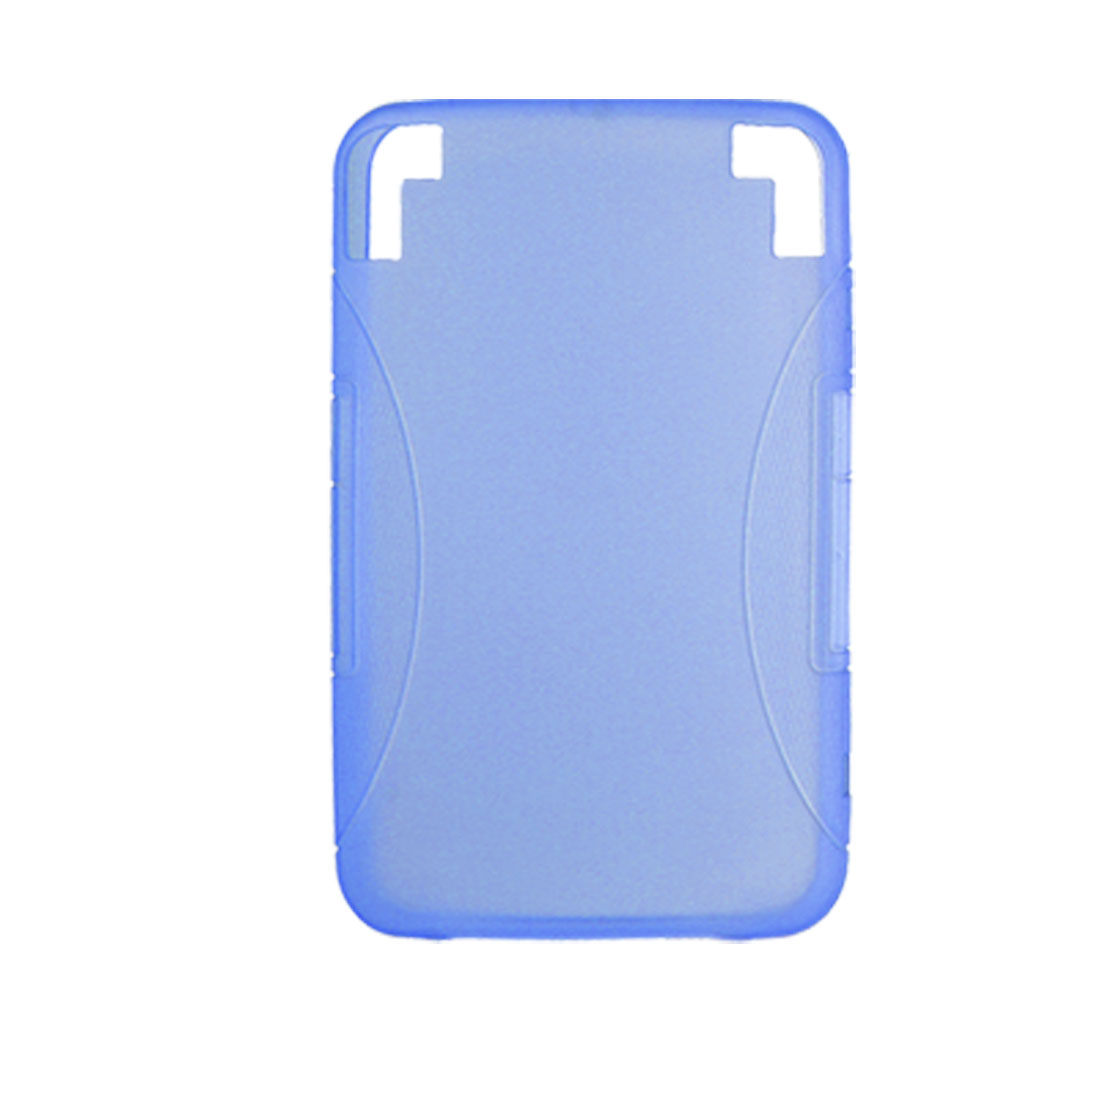 Blue Soft Plastic Smooth Cover Case for Amazon Kindle 3